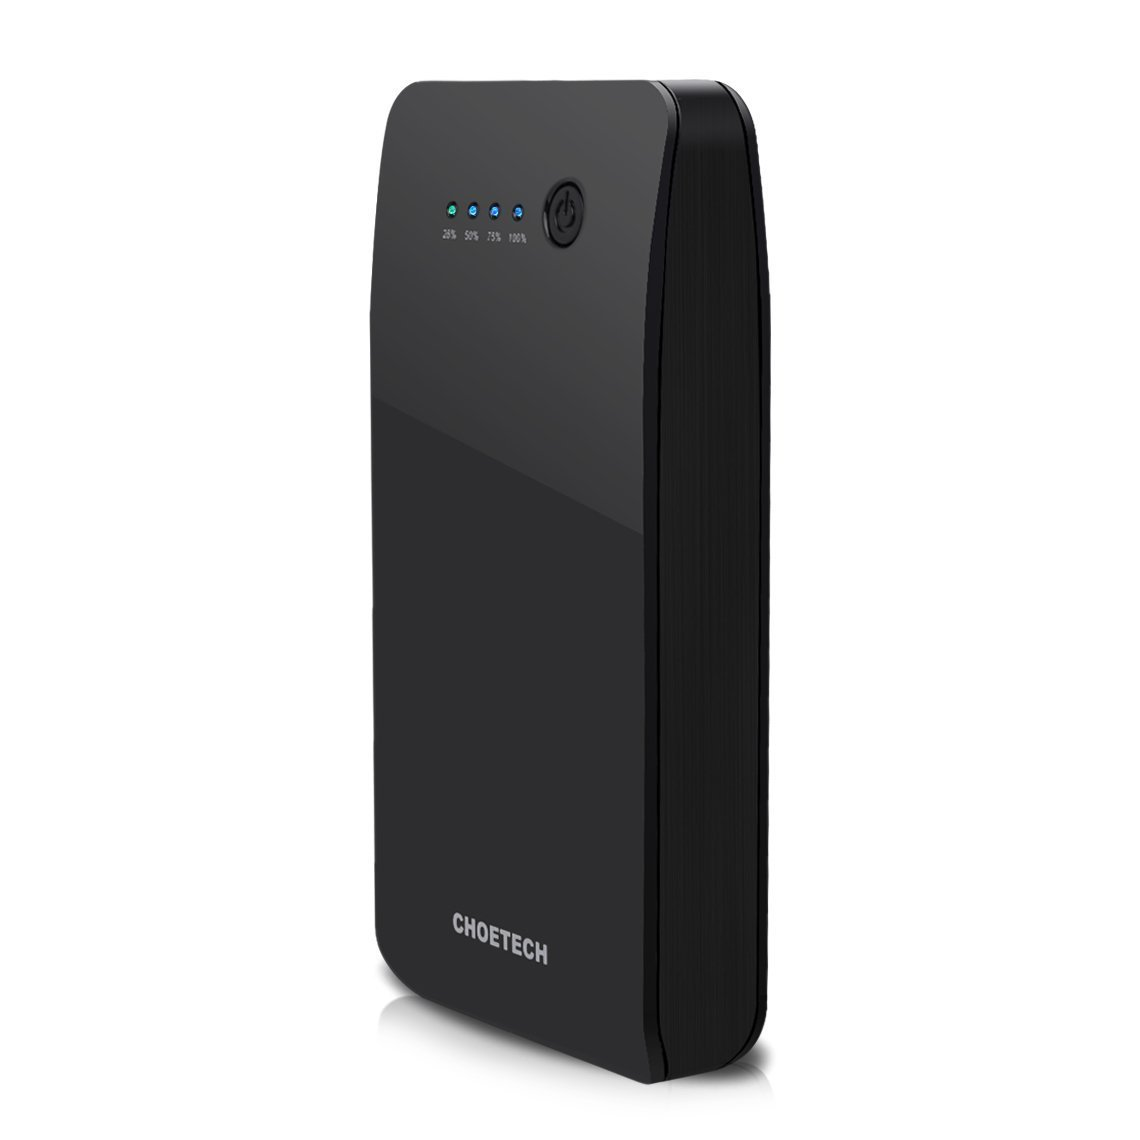 20000mAh Power Bank, CHOETECH Portable Battery Charger with 18W Power Delivery for iPhone X/8/Plus, Samsung Galaxy S9/ S9 Plus/Note 8 / S8 / S8 Plus and More CHOE-B613Q